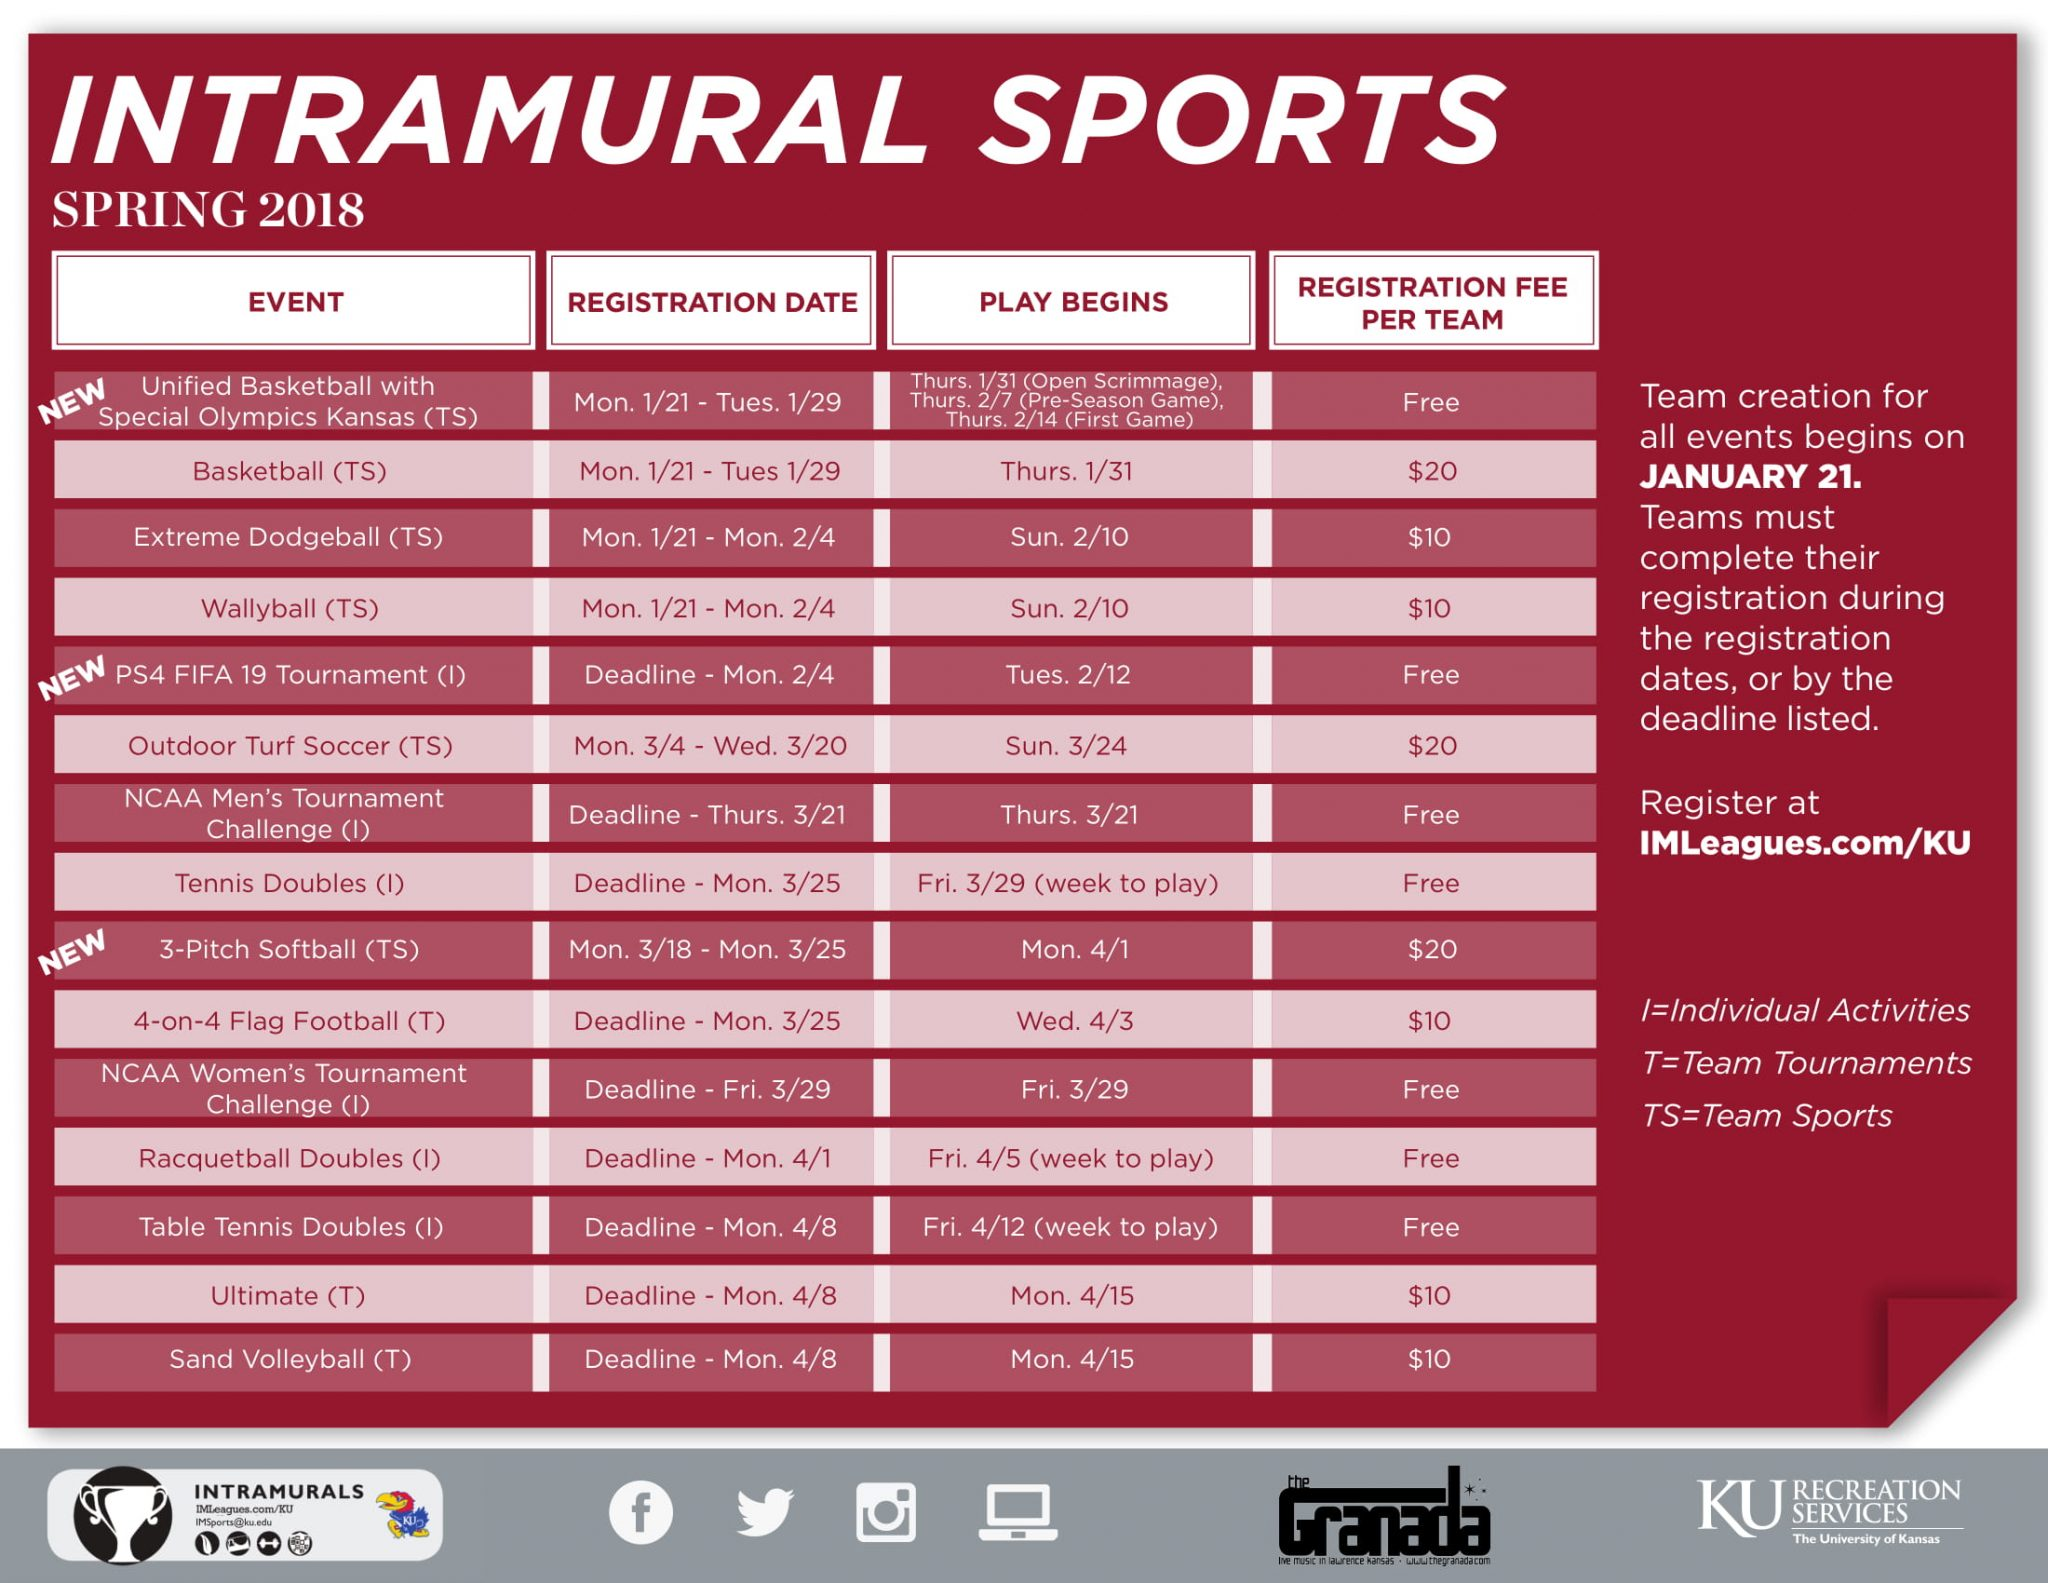 Intramural Schedule for Spring 2019